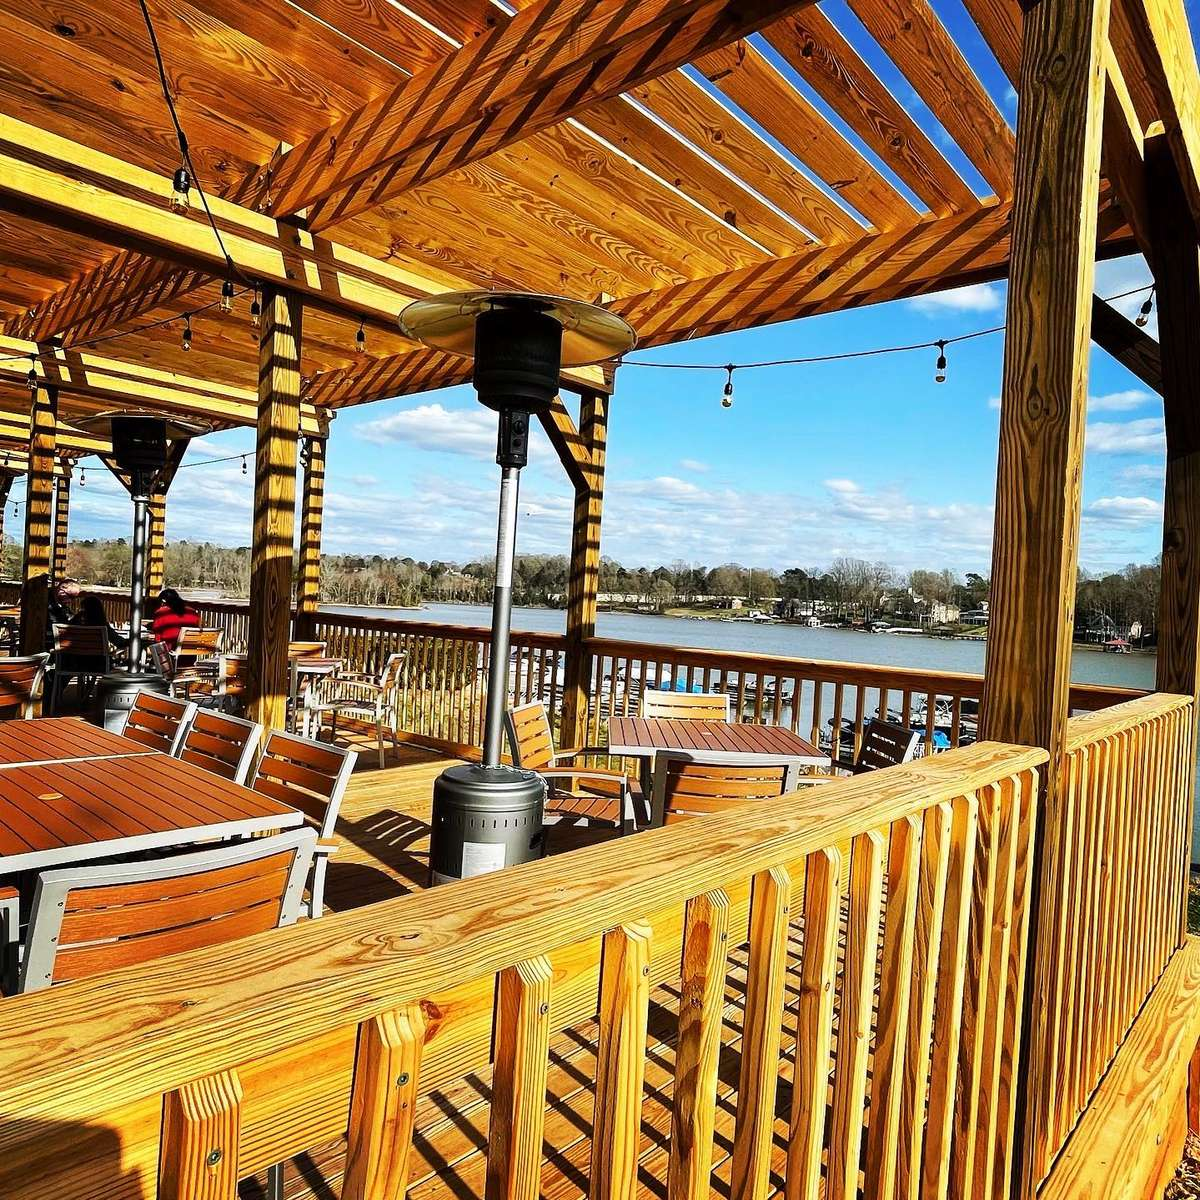 outdoor seating area overlooking Lake Norman